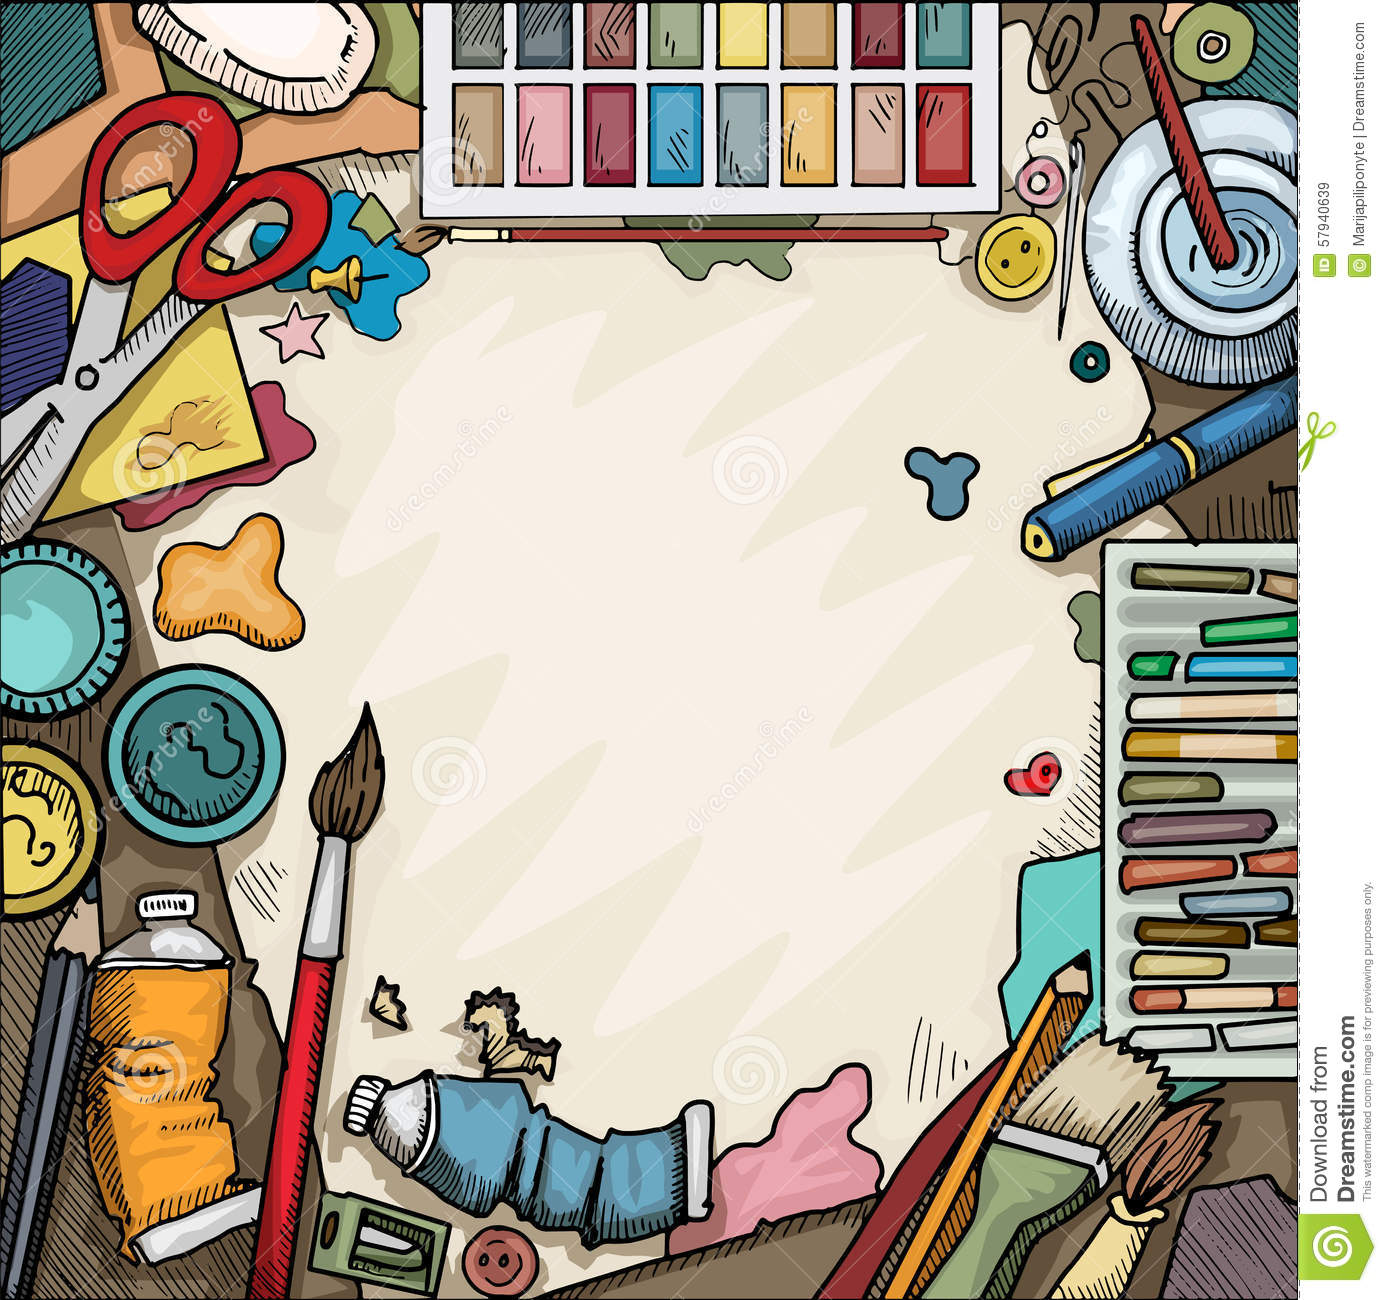 Background ariel view of arts and crafts table with various objects